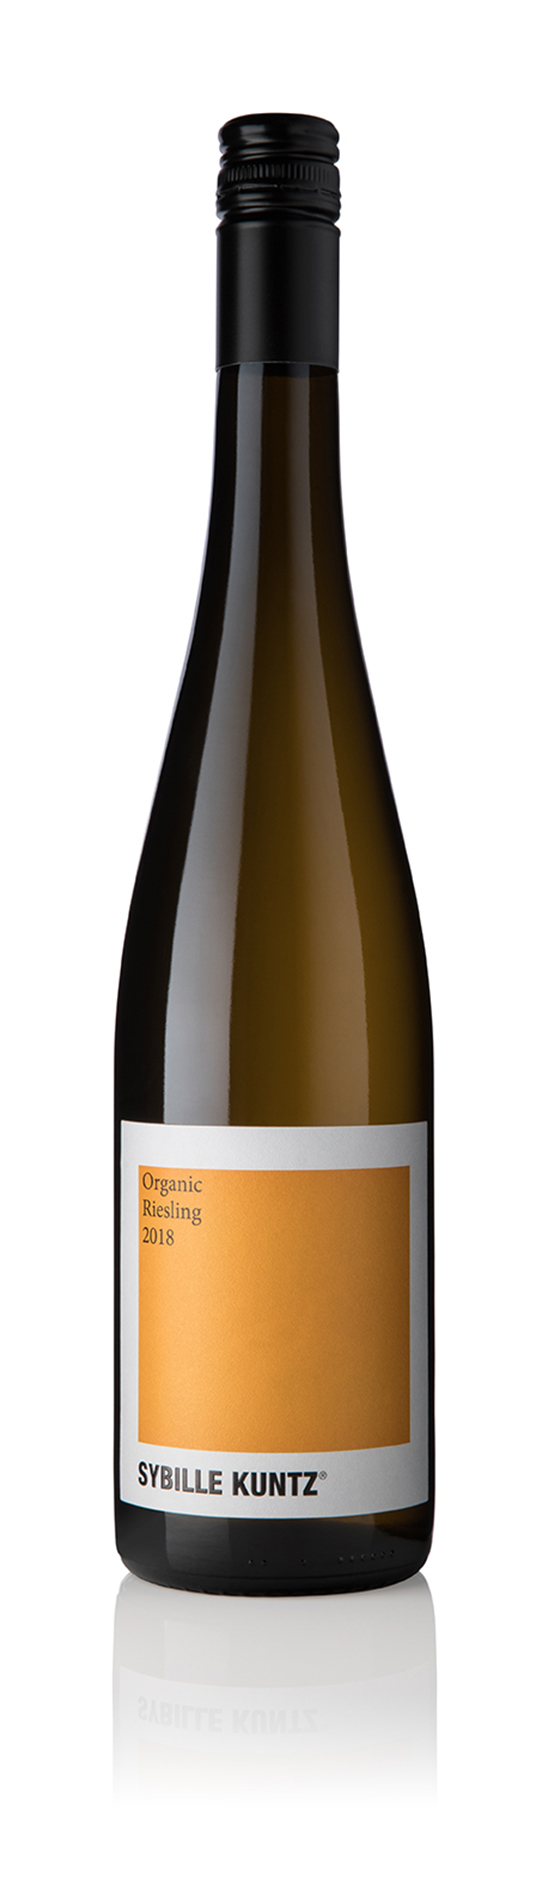 2018 SYBILLE KUNTZ Mosel-Riesling Organic Riesling 0,75 l